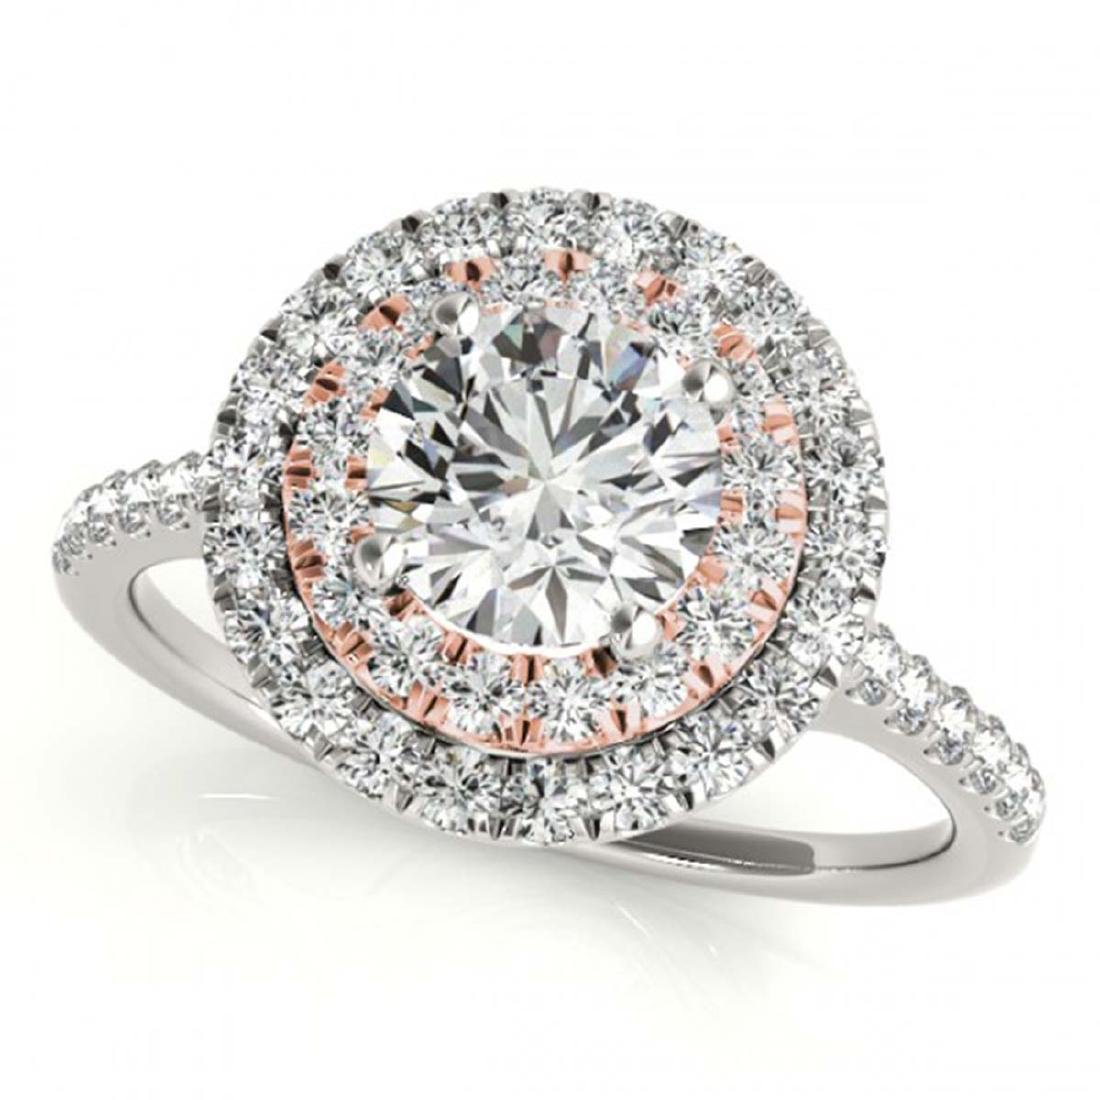 1.25 ctw VS/SI Diamond Solitaire Halo Ring 18K White &